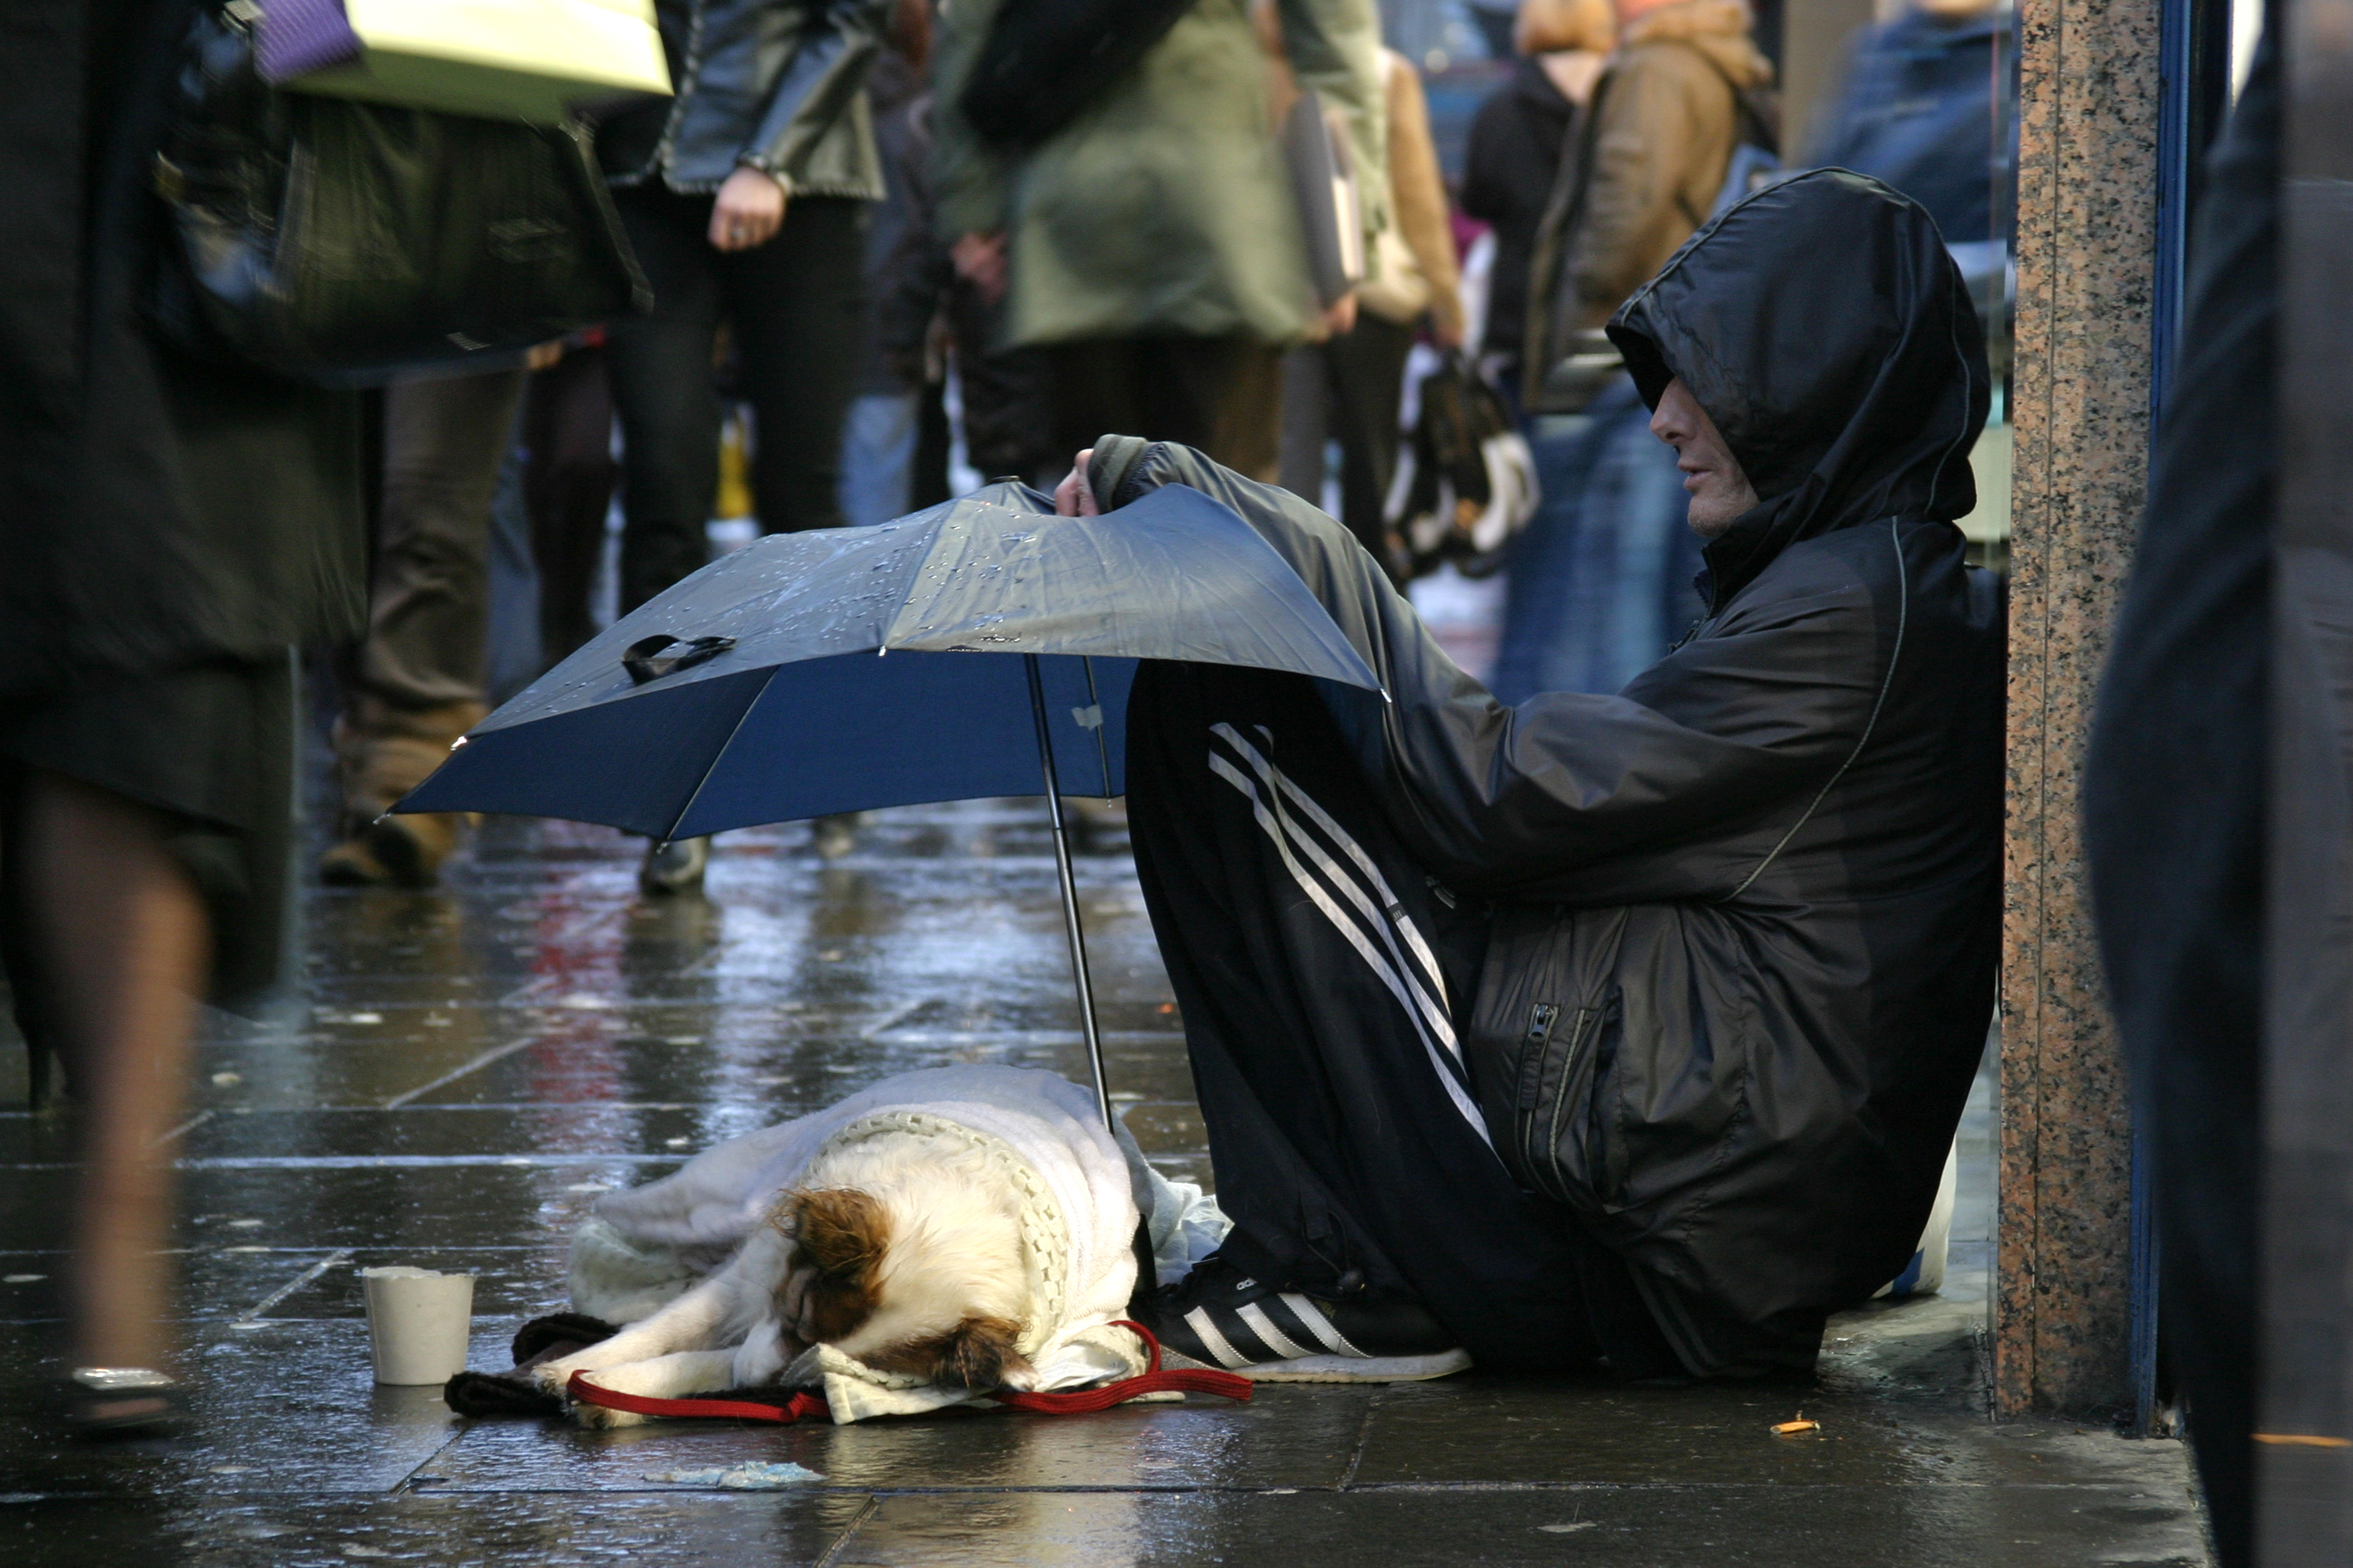 man holds umbrella over dog